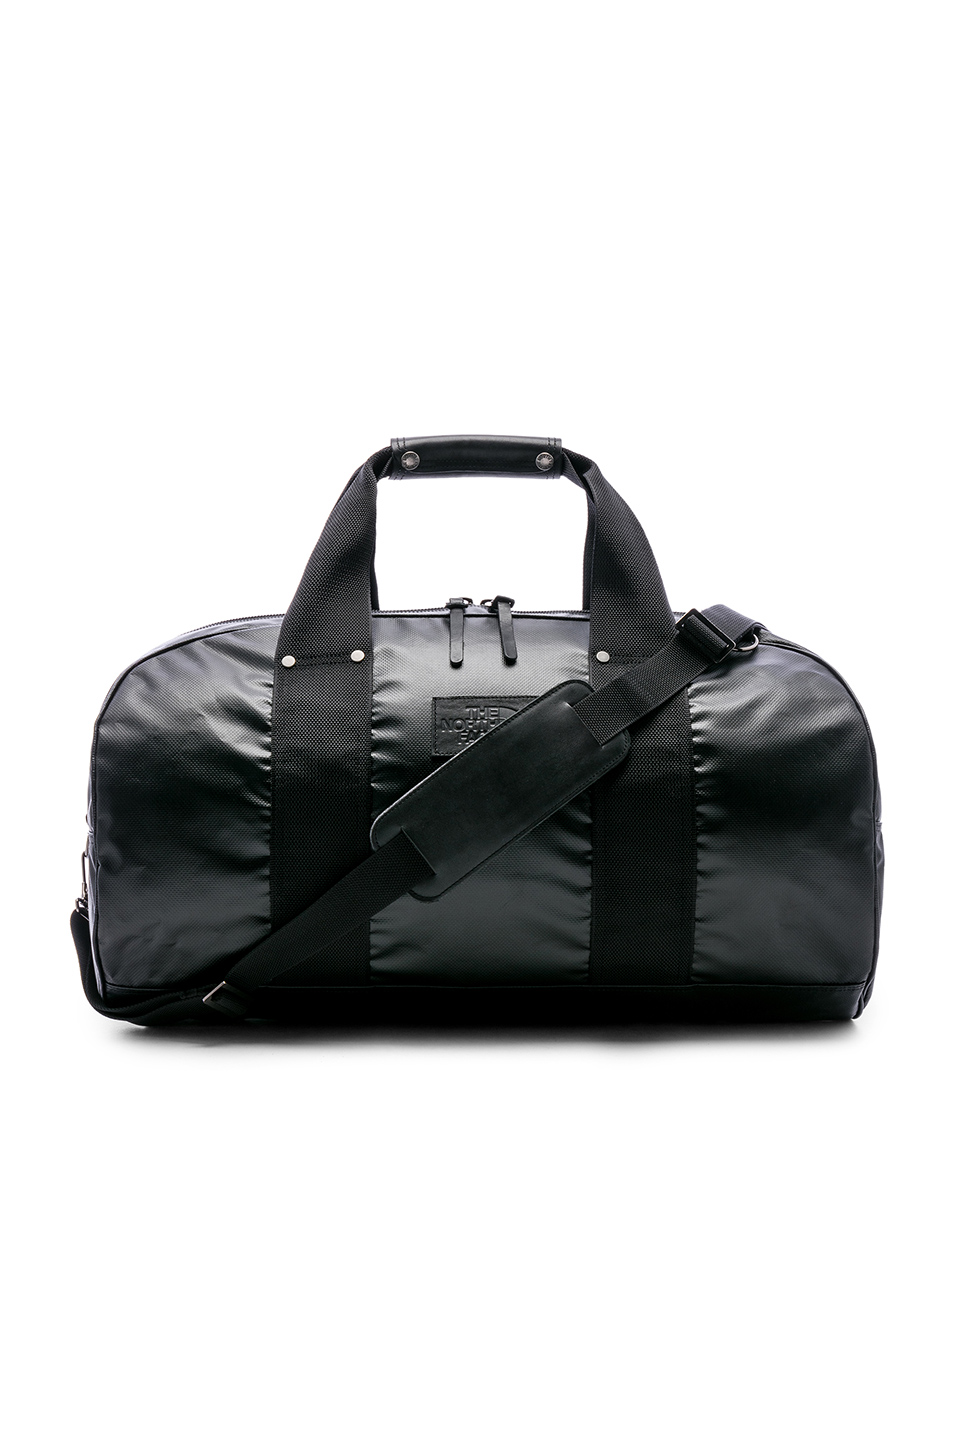 34b041612f1db x The North Face PVC Duffel, Junya Watanabe